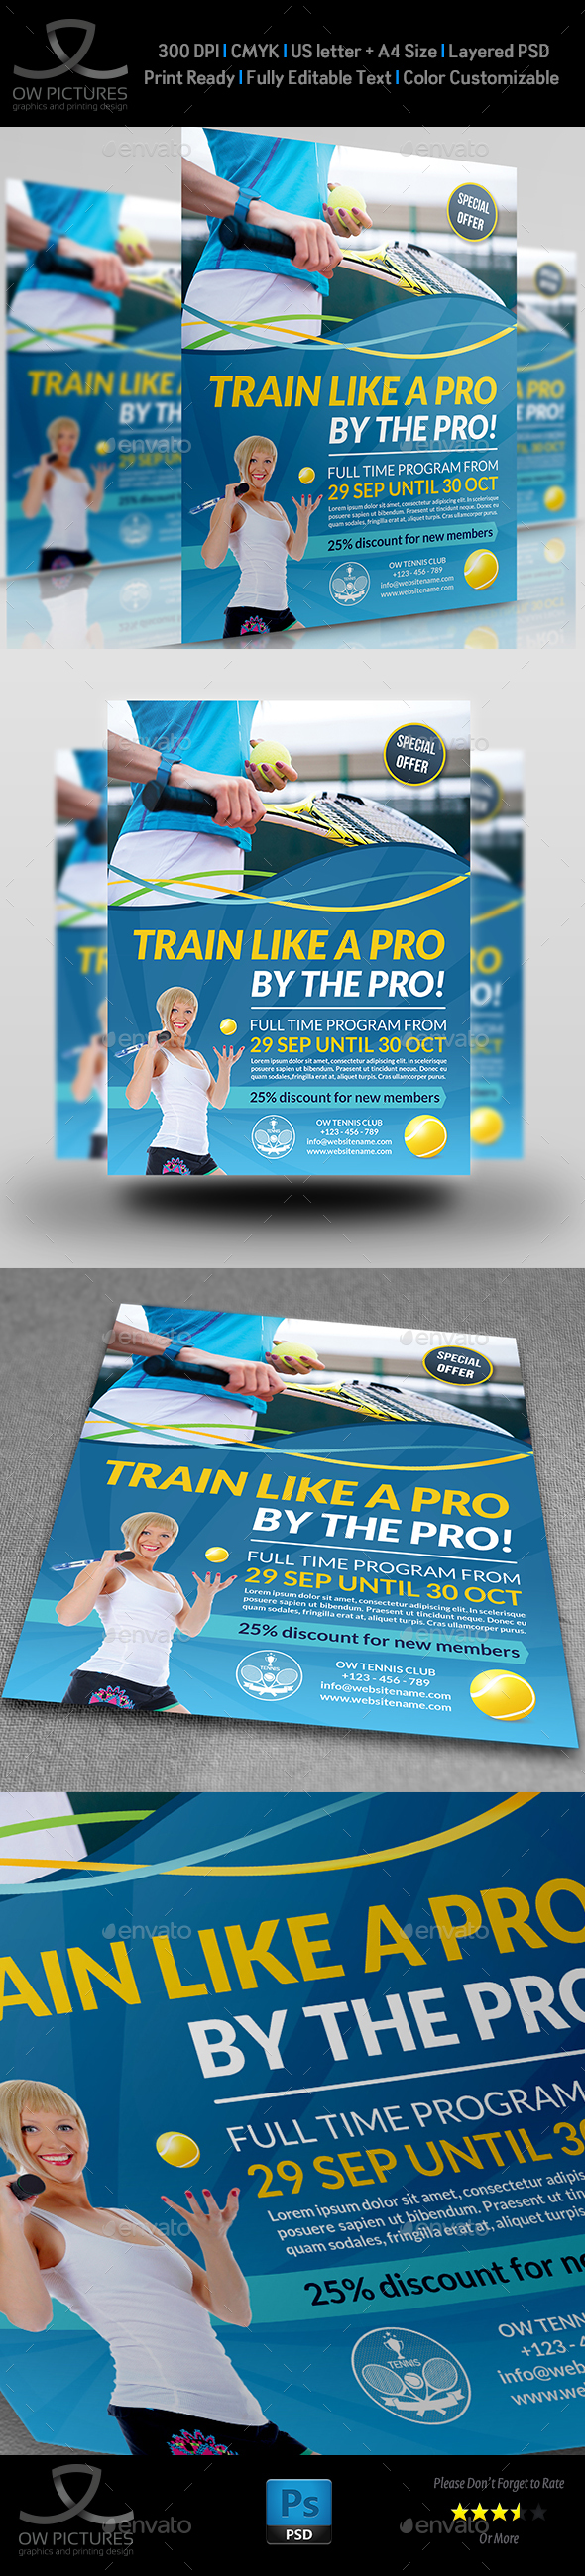 Tennis Training Flyer Template - Sports Events